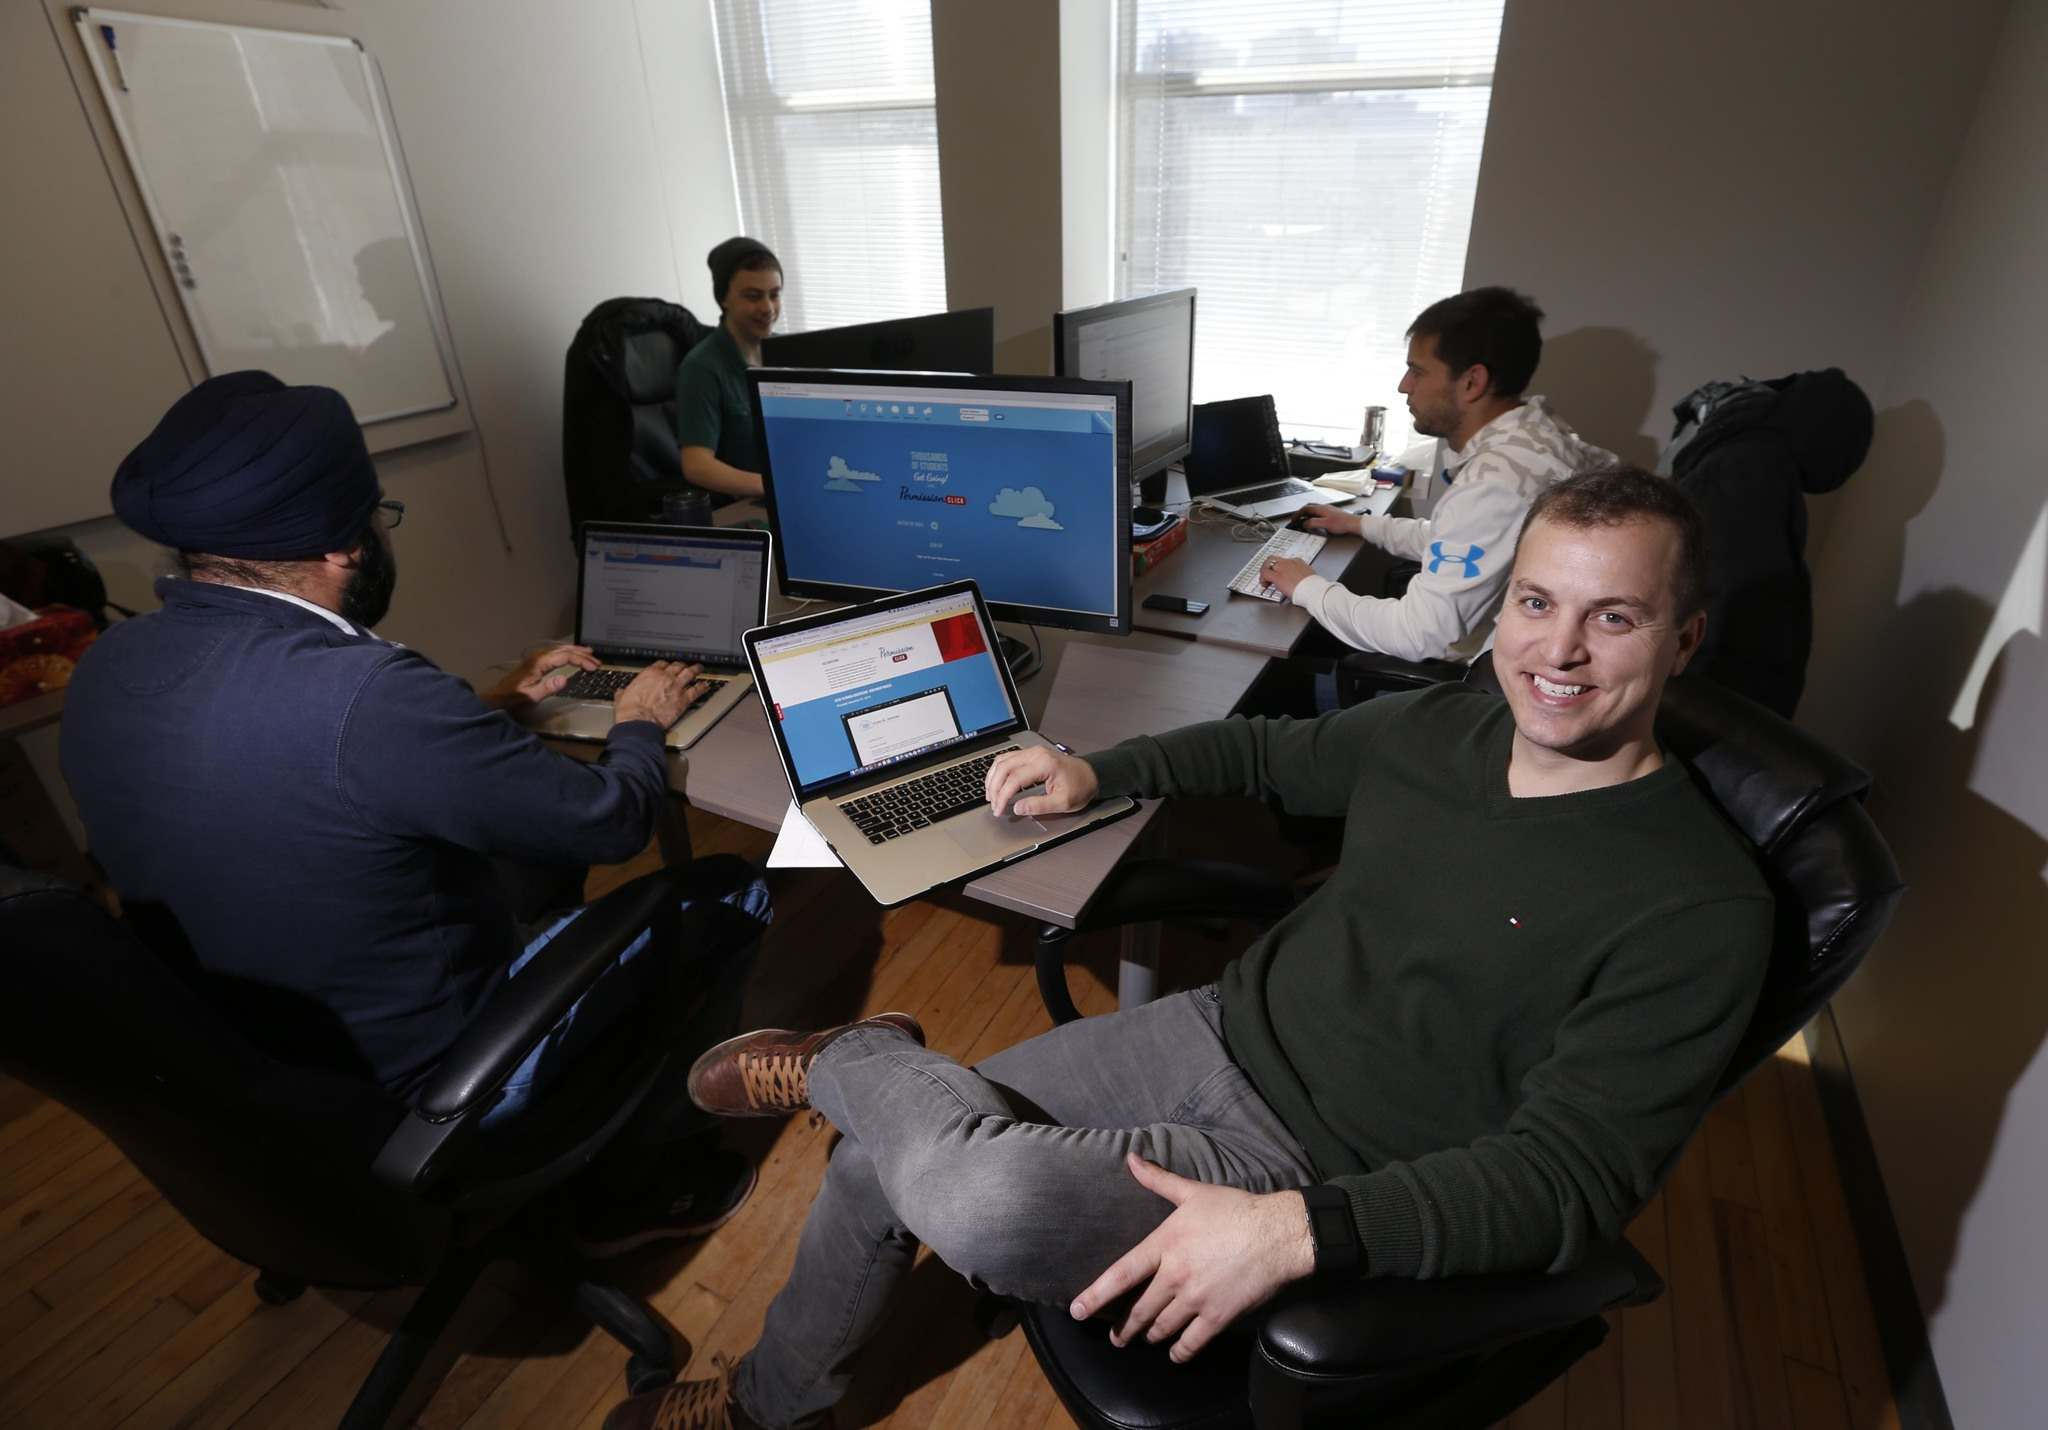 WAYNE GLOWACKI / WINNIPEG FREE PRESS FILES</p><p>Chris Johnson, centre, is CEO of Permission Click, a Winnipeg company that&rsquo;s developed digital permission forms and automatic payment system for schools and clubs across North America.</p>